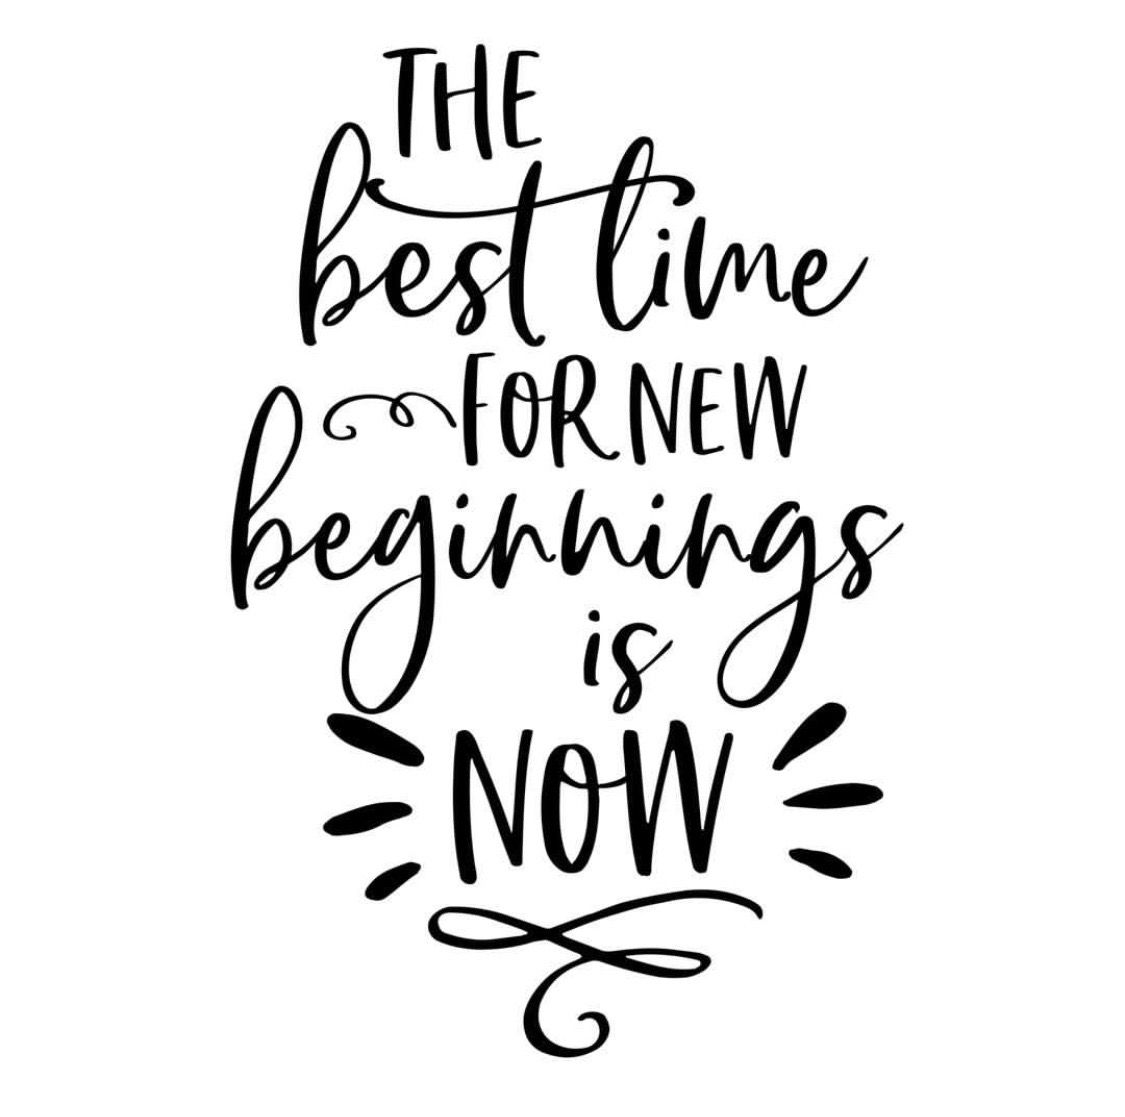 Bildergebnis für the best time for new beginnings is now""